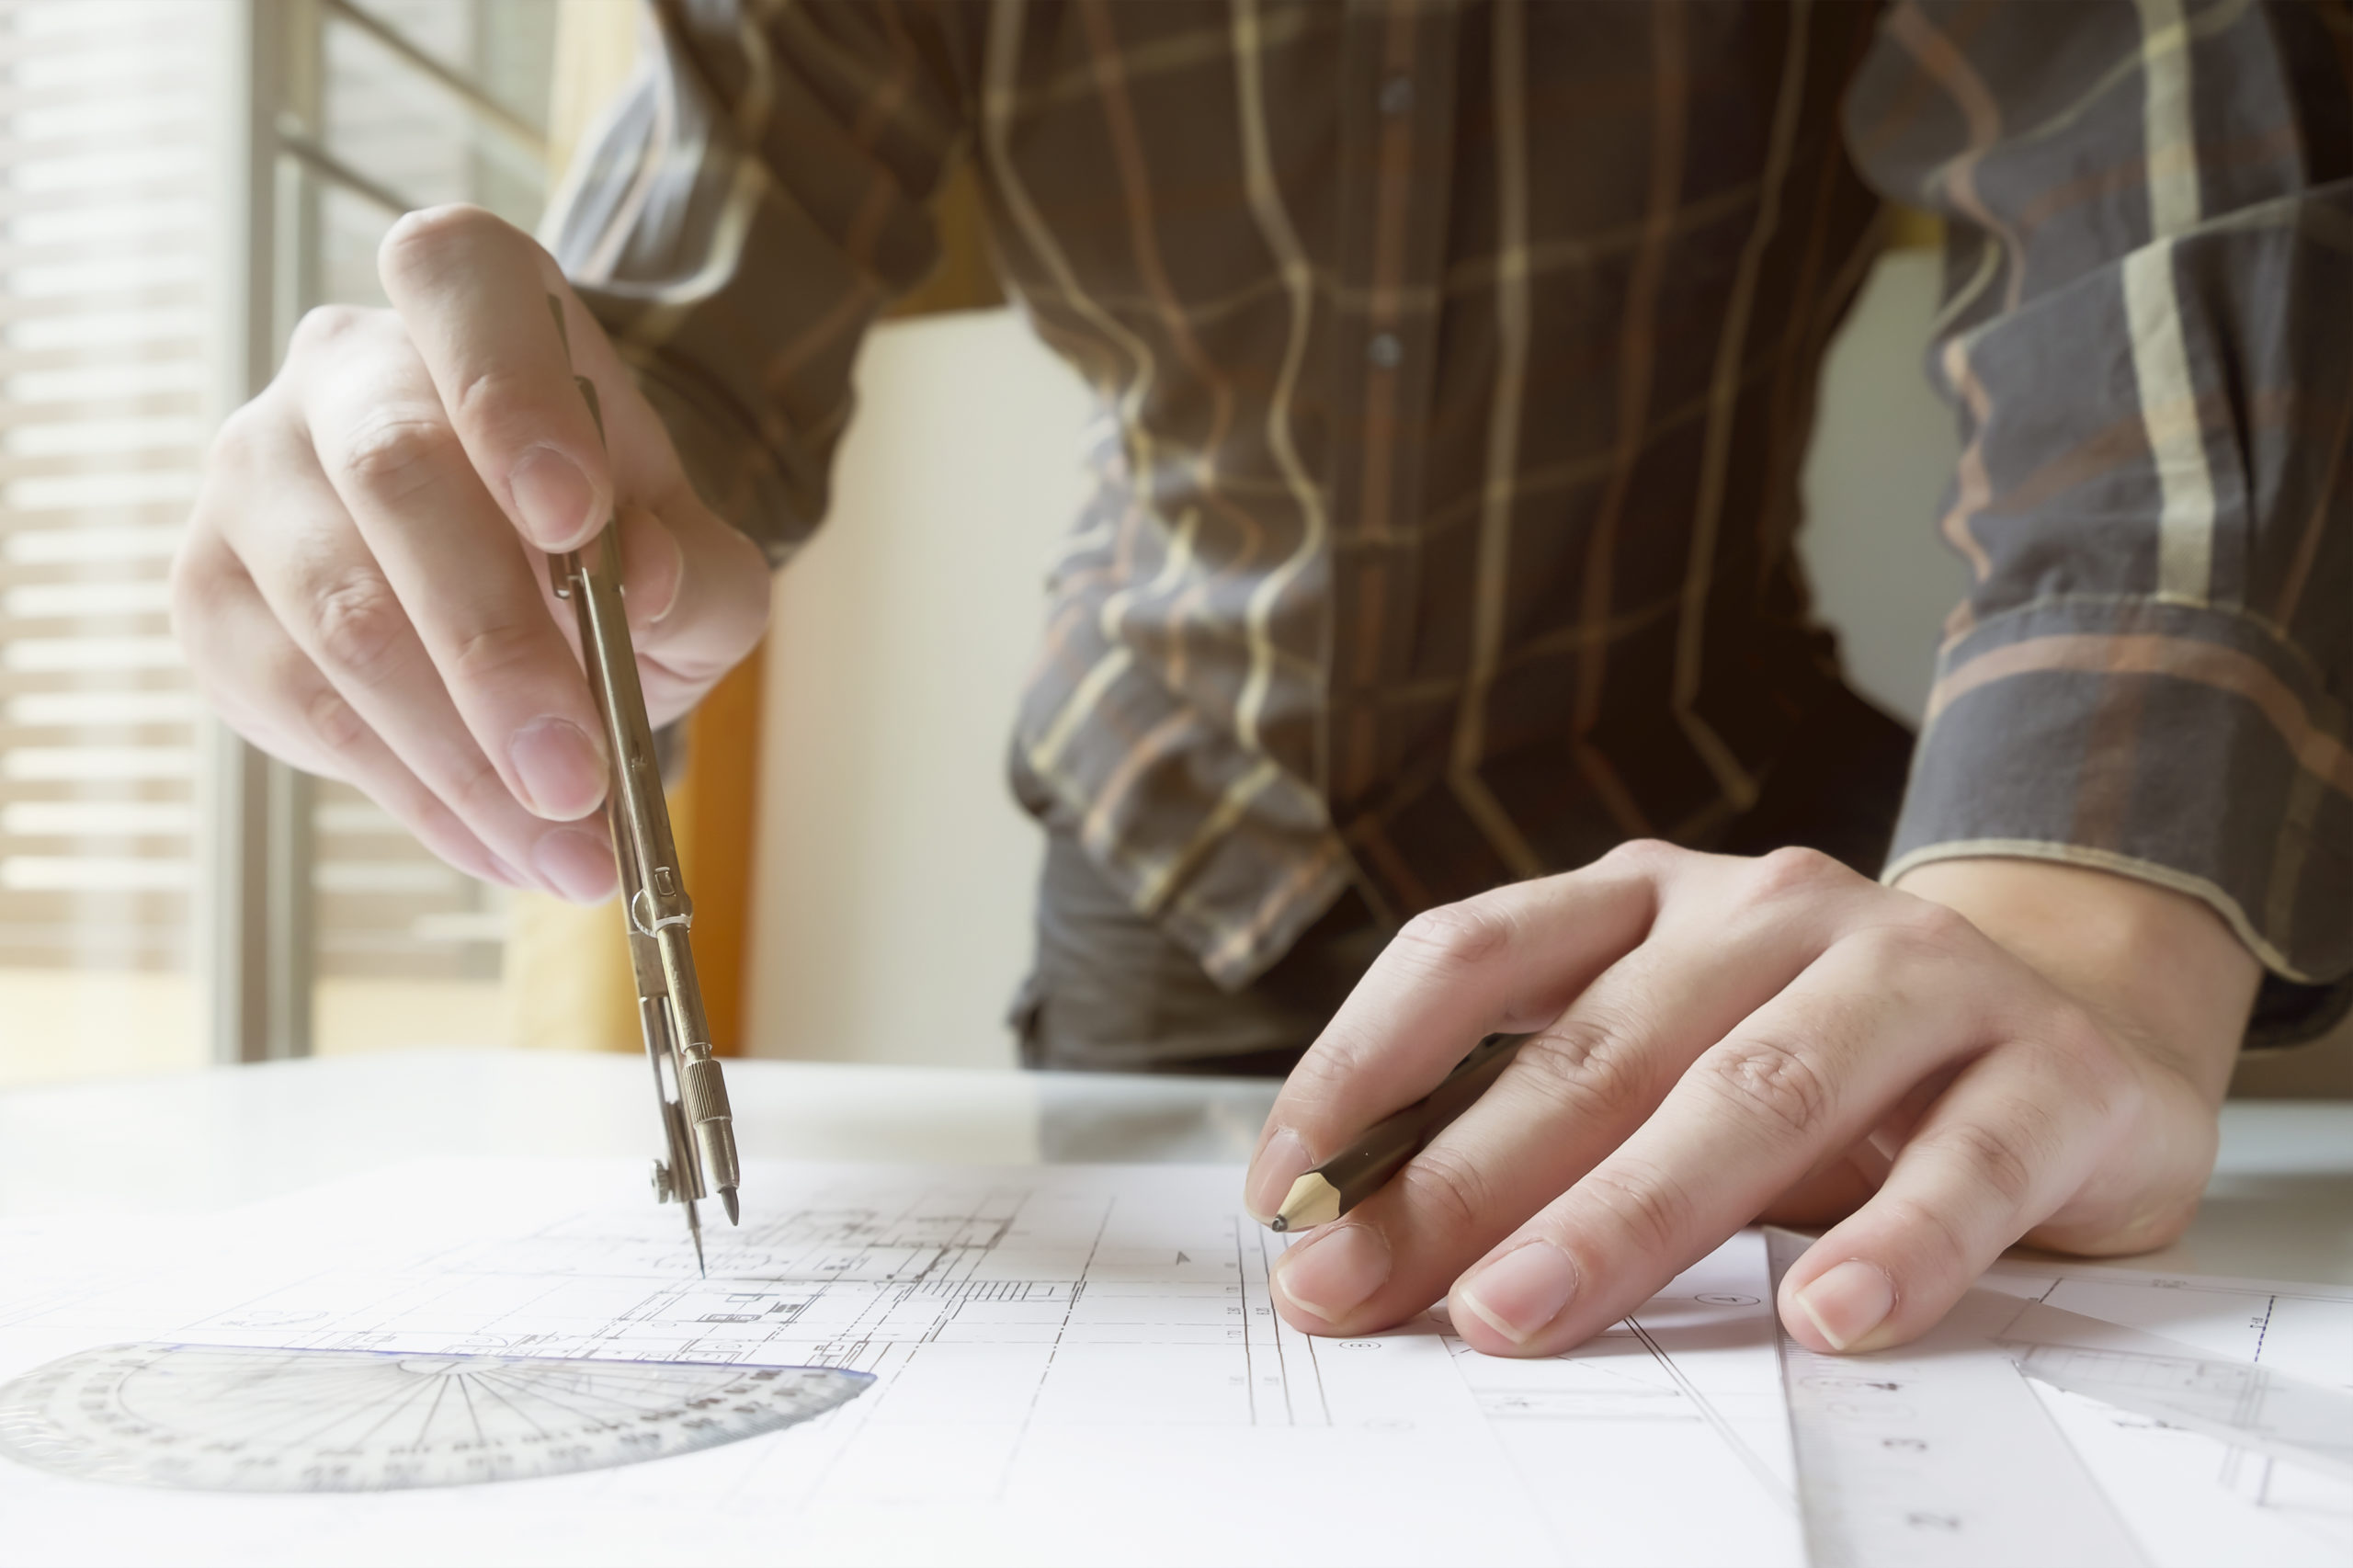 Hands Technical Drawing